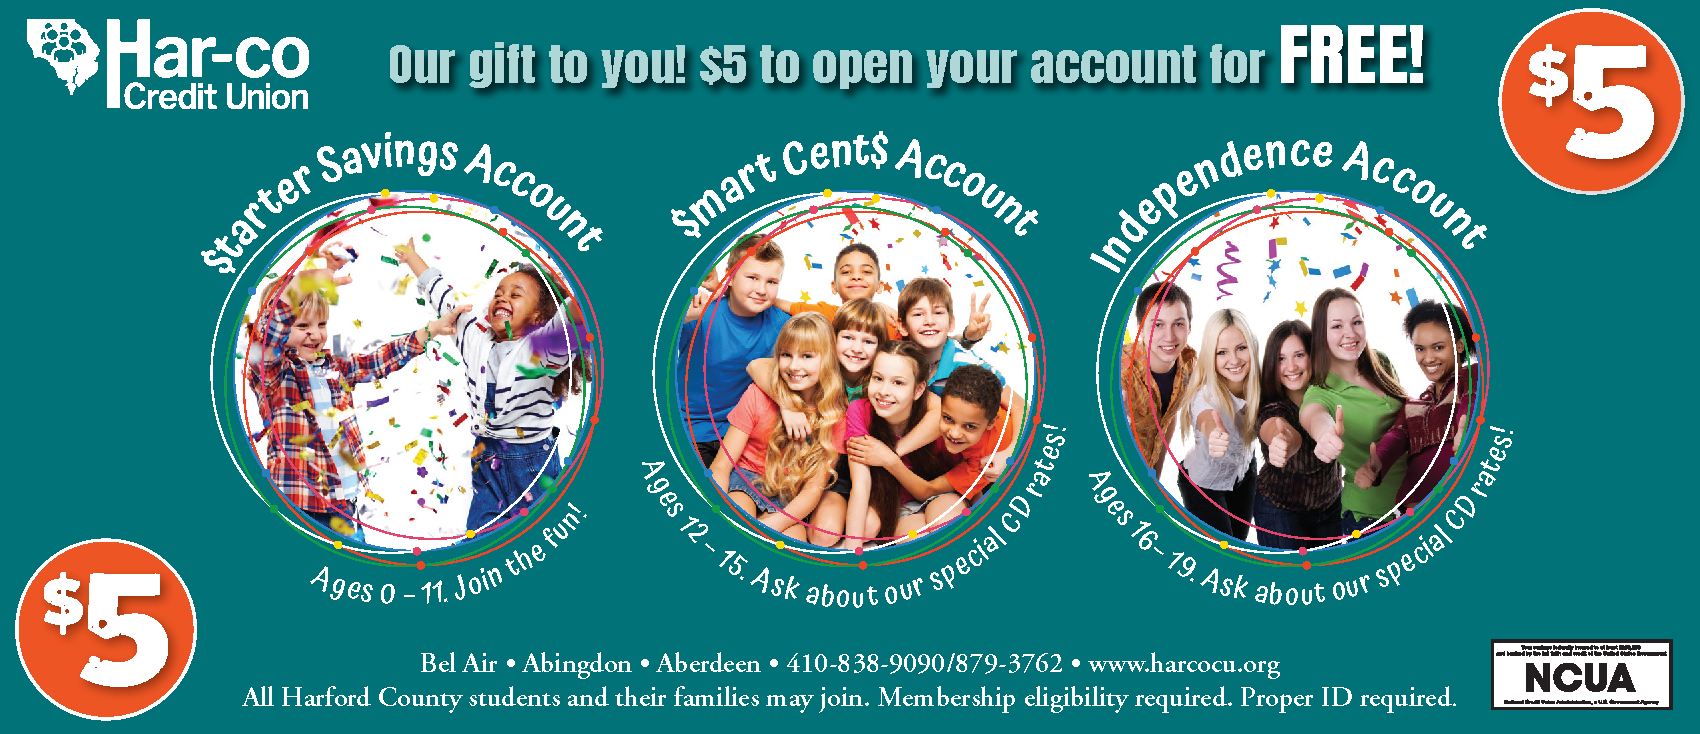 $5 Youth Account coupon